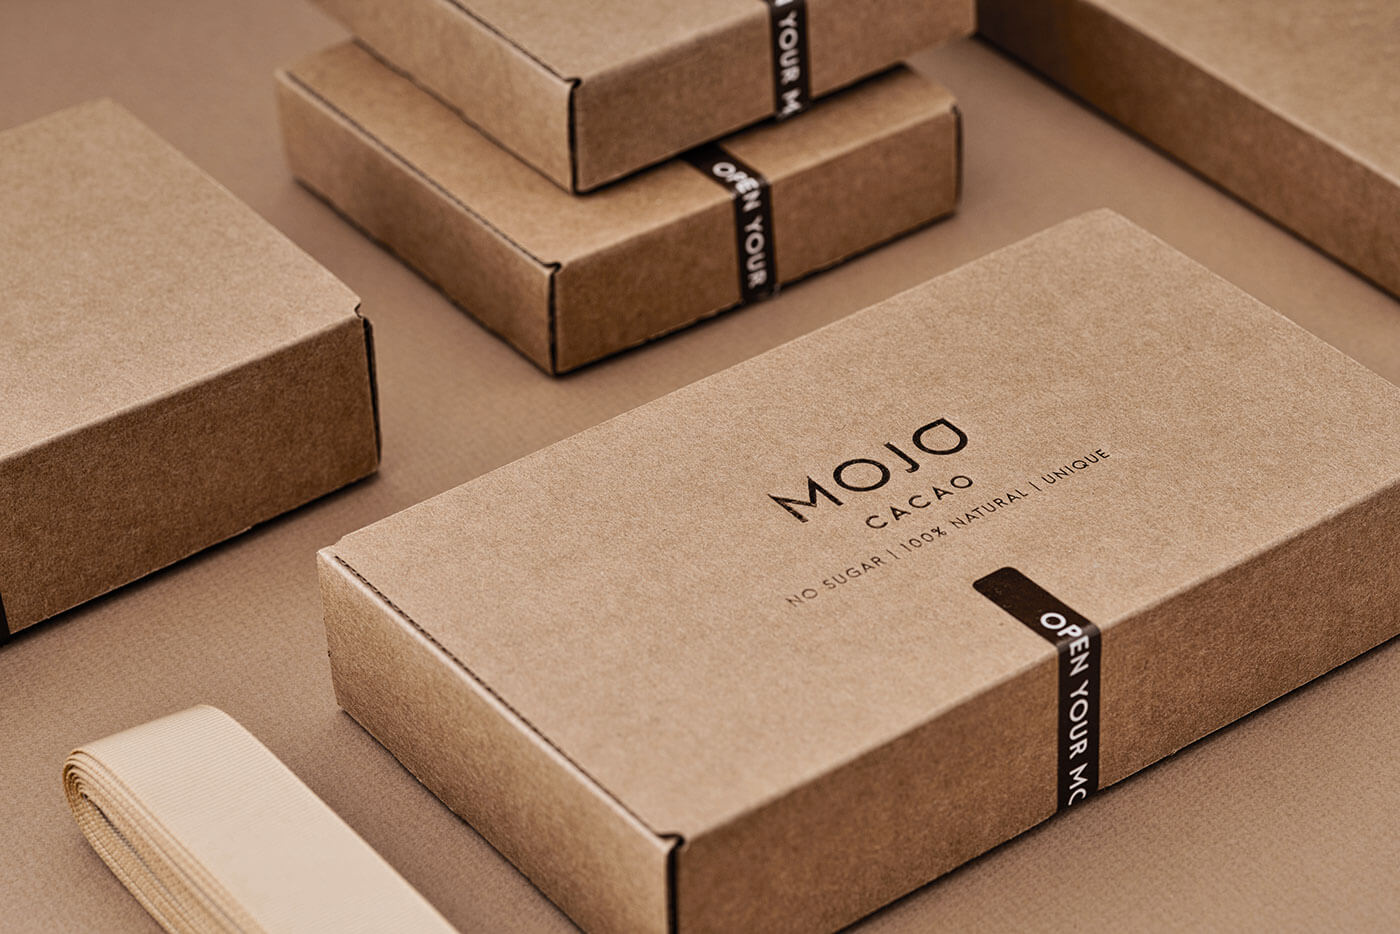 mojo_cacao_packaging_Inspiration_packhelp